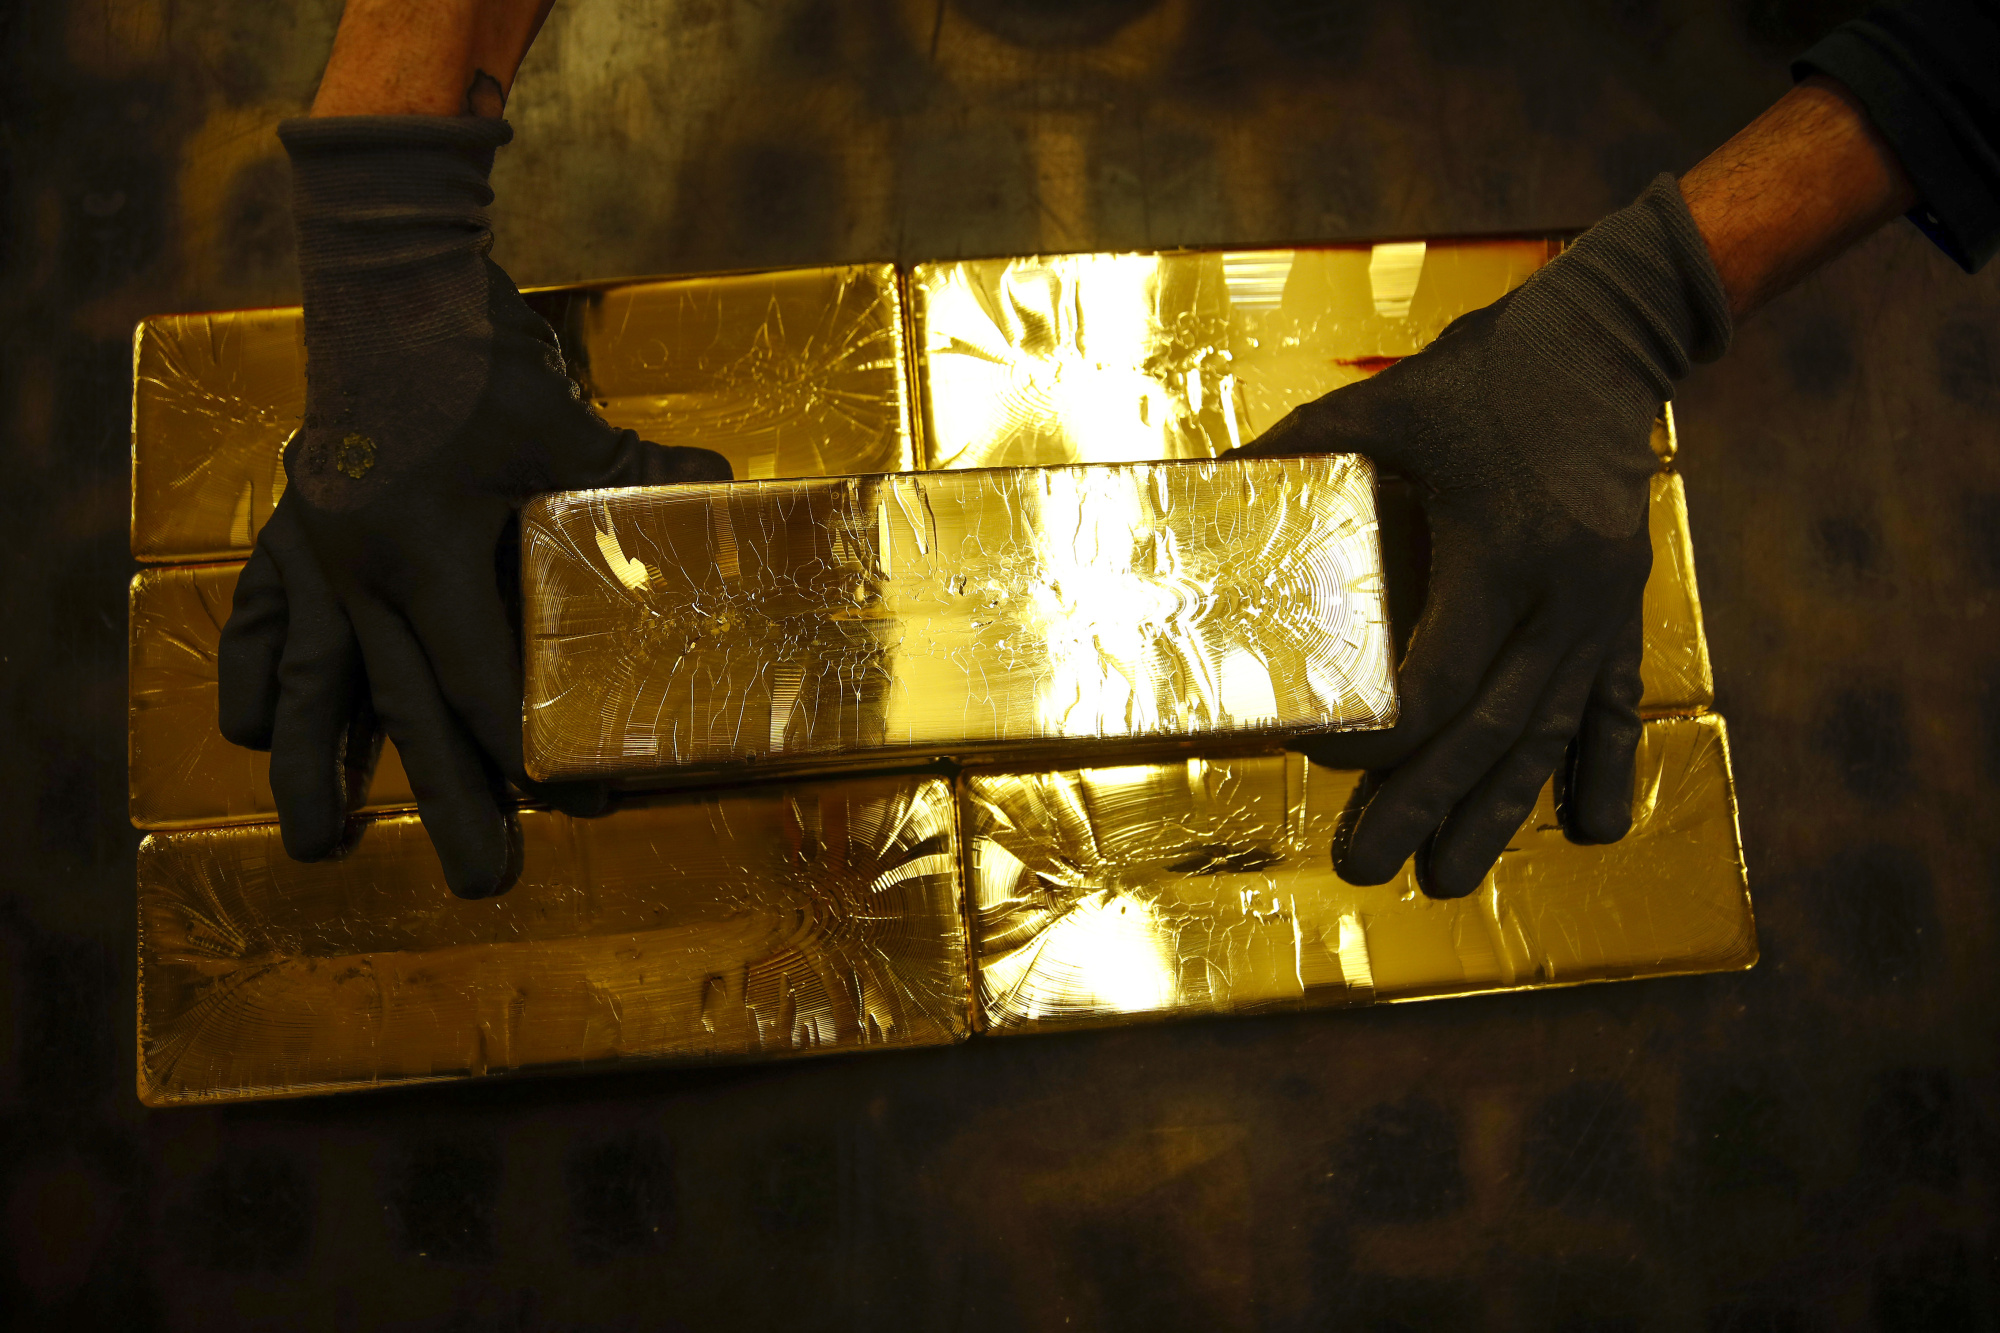 bloomberg.com - Sarah Ponczek - Buy Gold, Sell Stocks Is the 'Trade of Century' Says One Hedge Fund